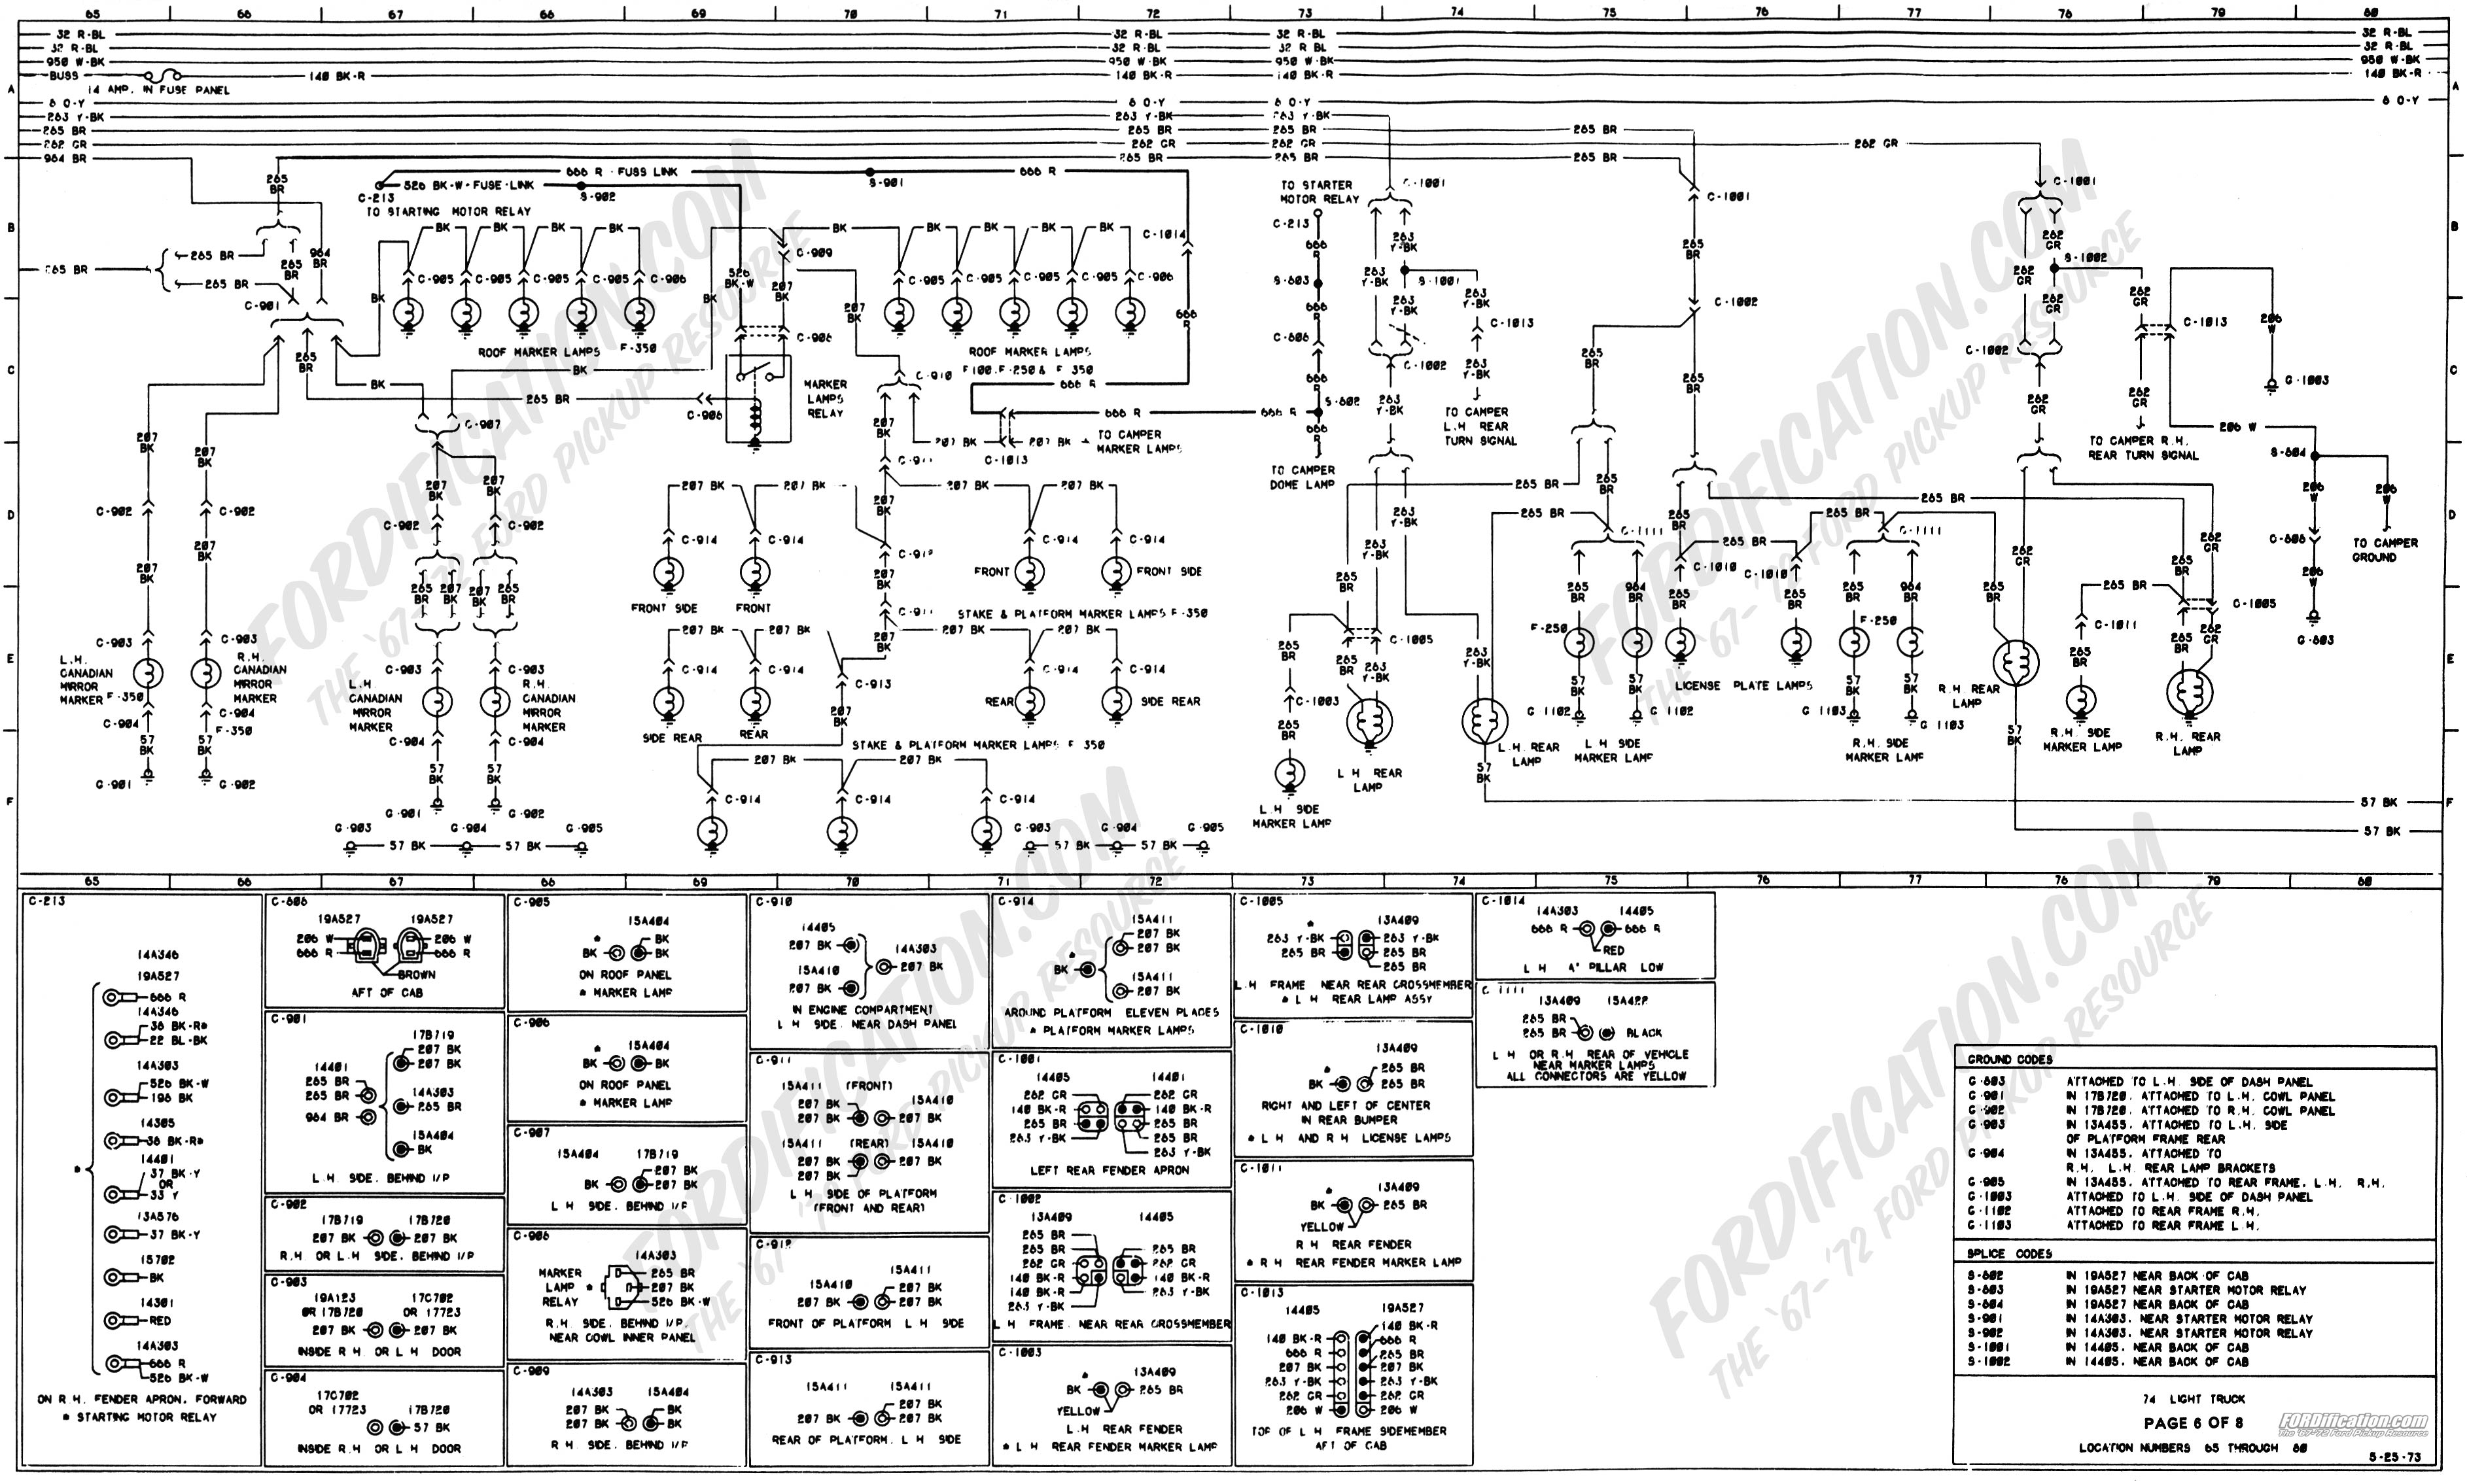 wiring_74master_6of8 1973 1979 ford truck wiring diagrams & schematics fordification net 1999 ford f350 wiring diagram at bakdesigns.co